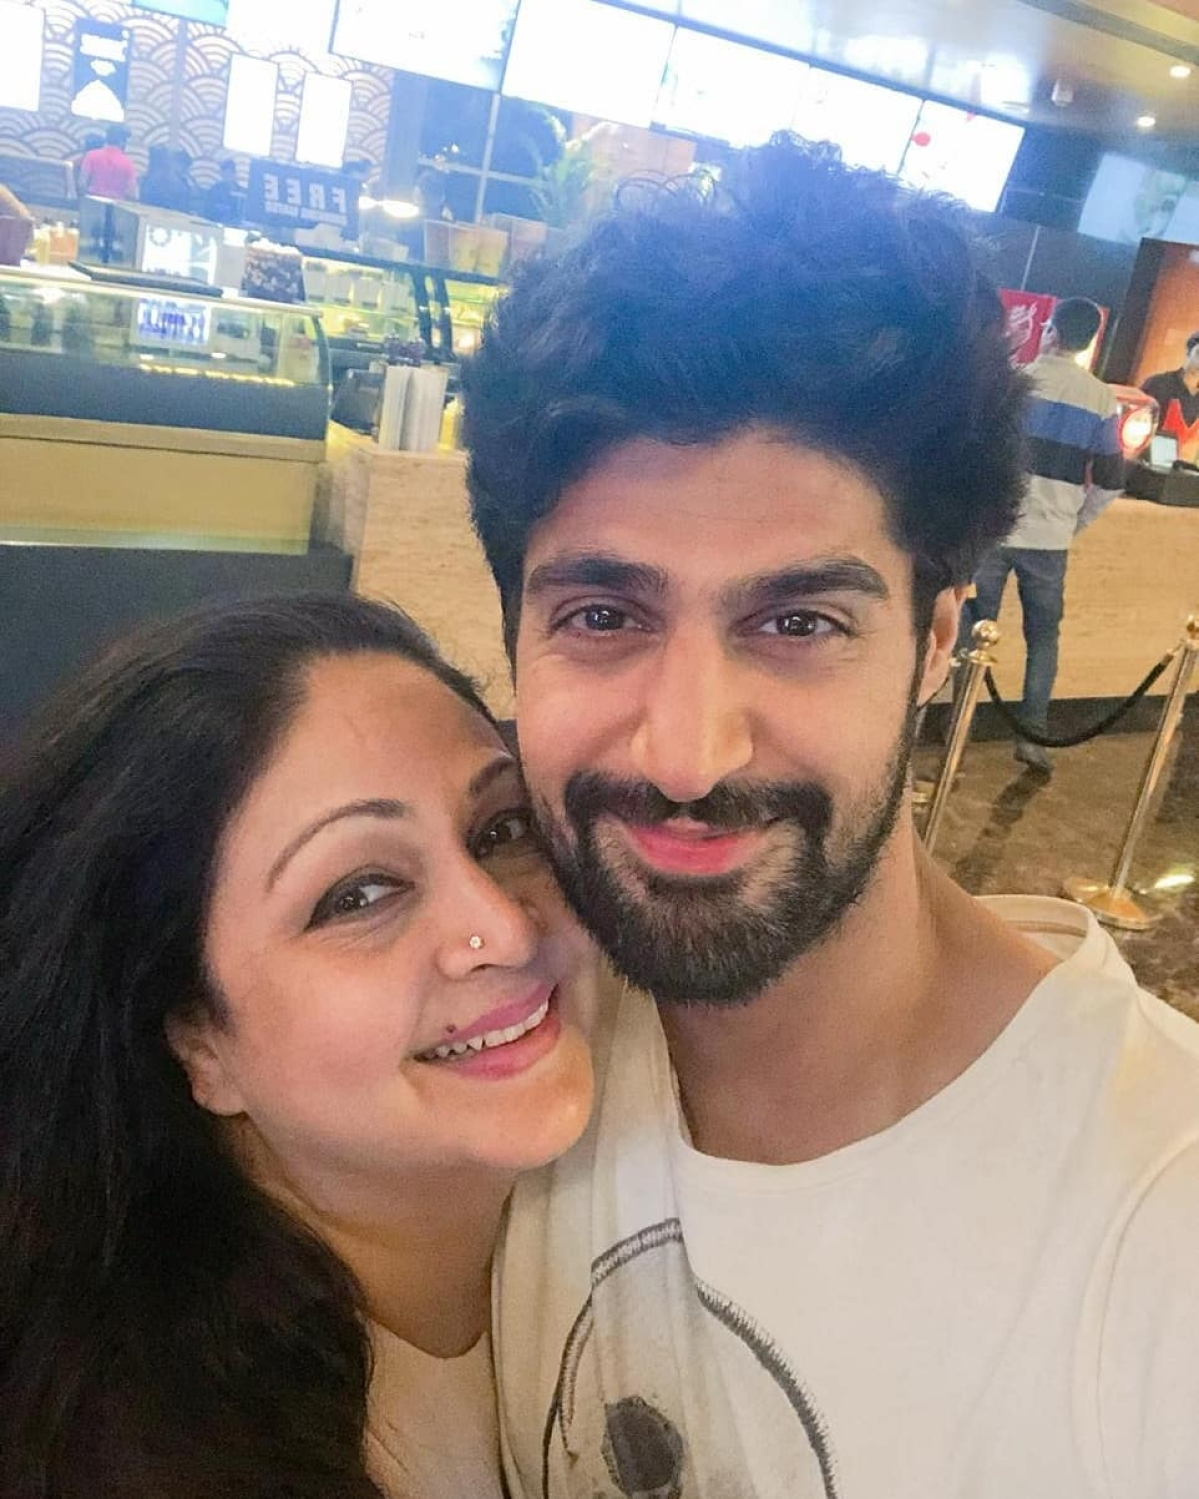 Yesteryear actress Rati Agnihotri stuck in Poland with her pooch Stuart Little: Report